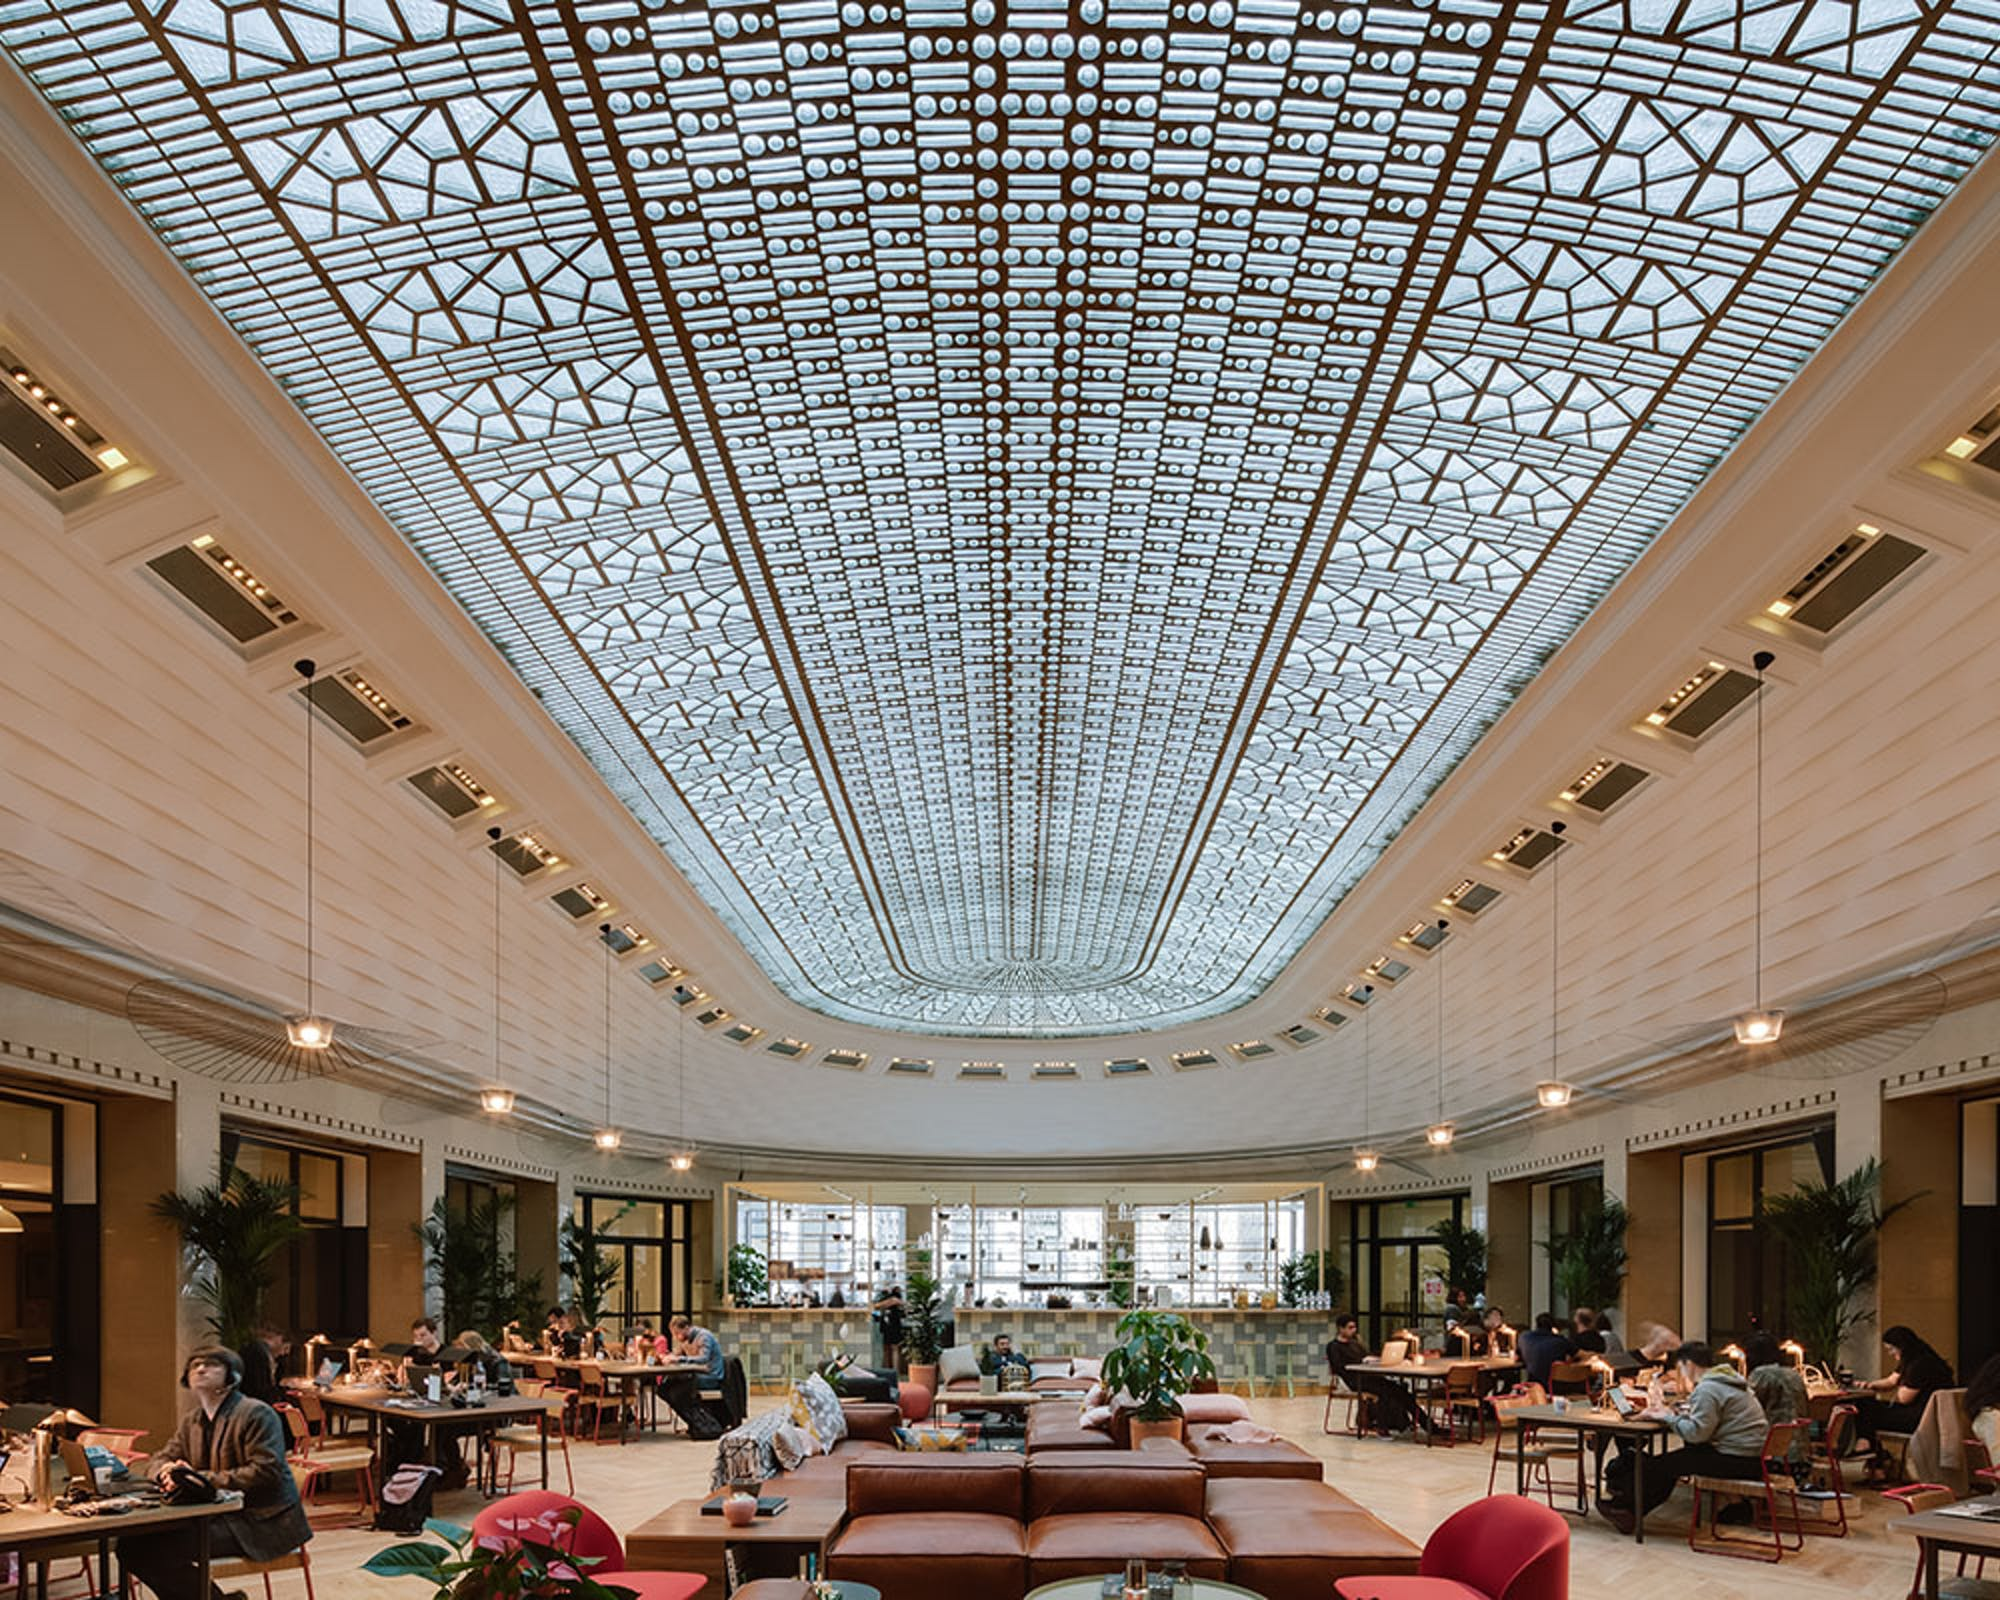 www.architecturaldigest.com | An Exclusive Look at WeWork's First Paris Location